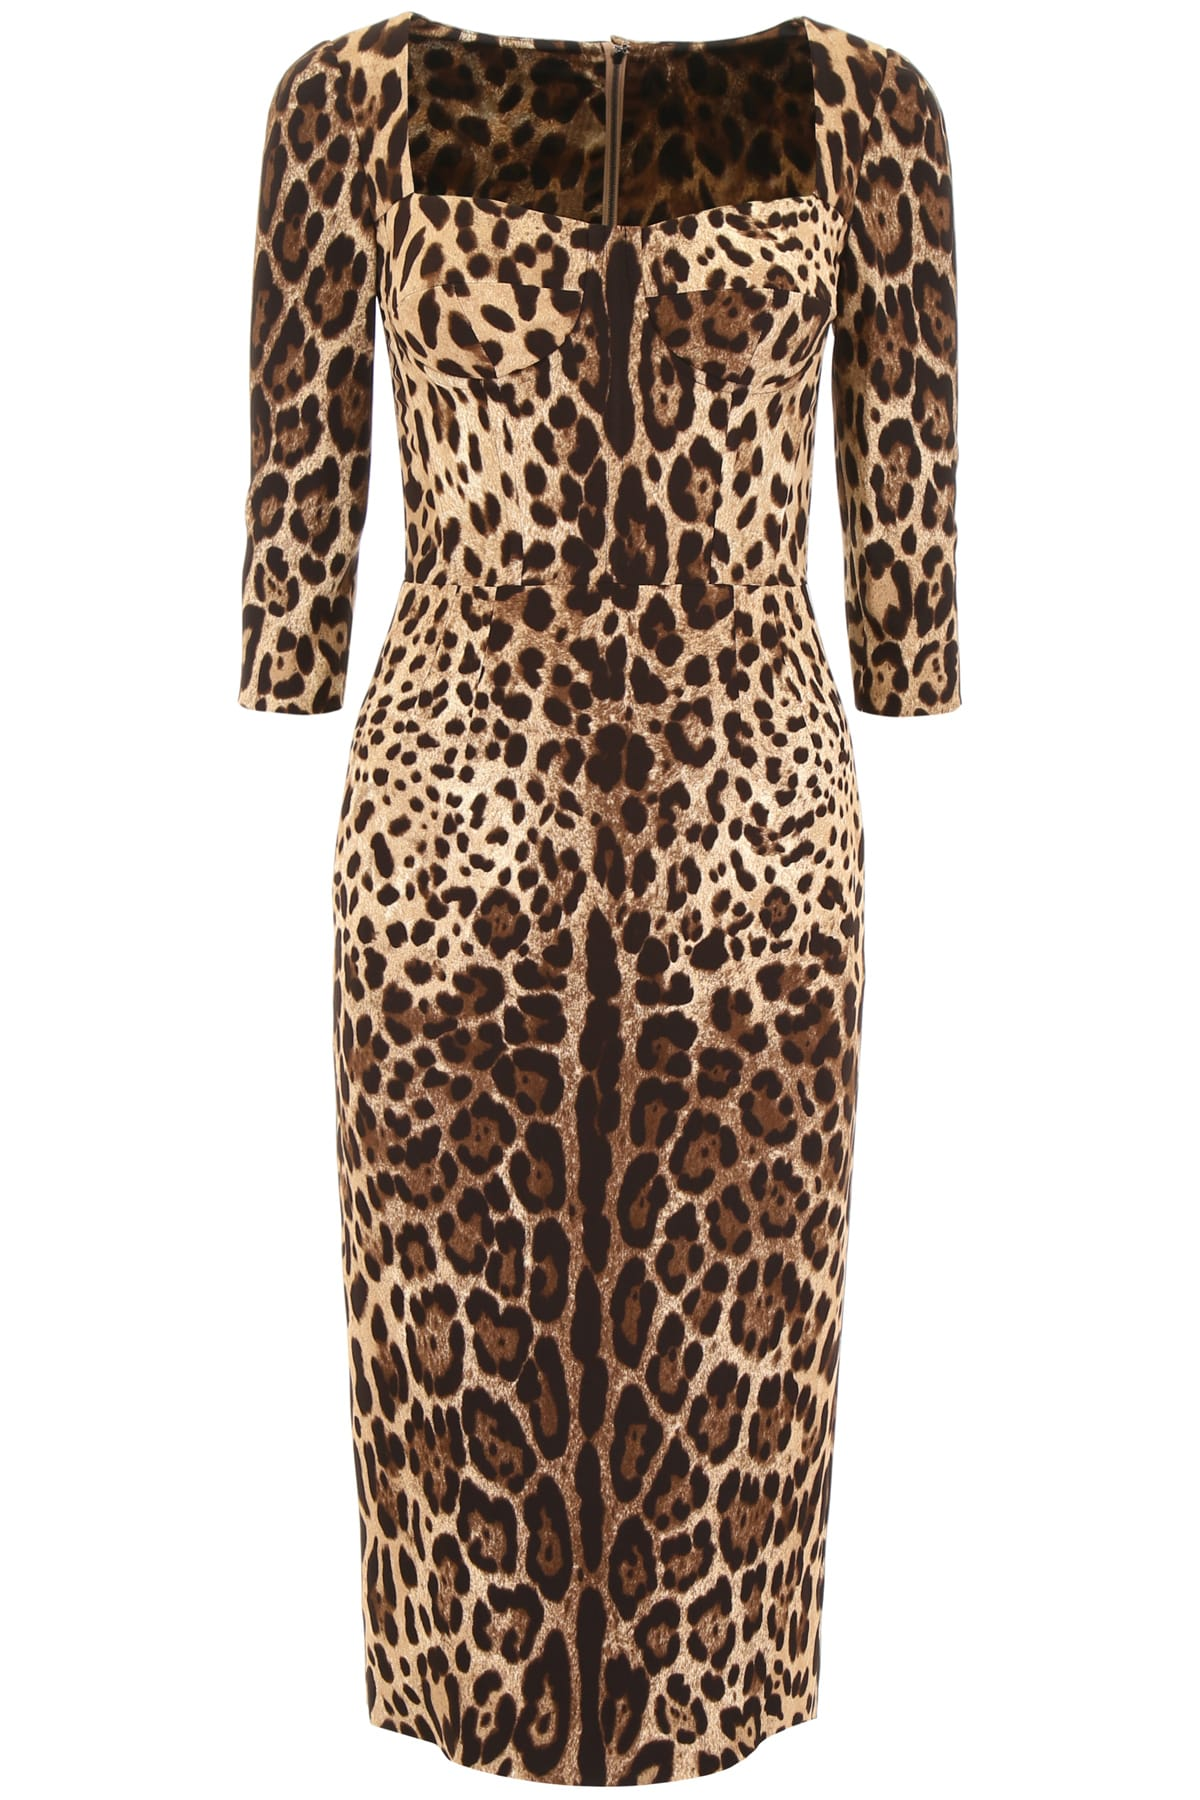 Buy Dolce & Gabbana Leopard-printed Dress online, shop Dolce & Gabbana with free shipping